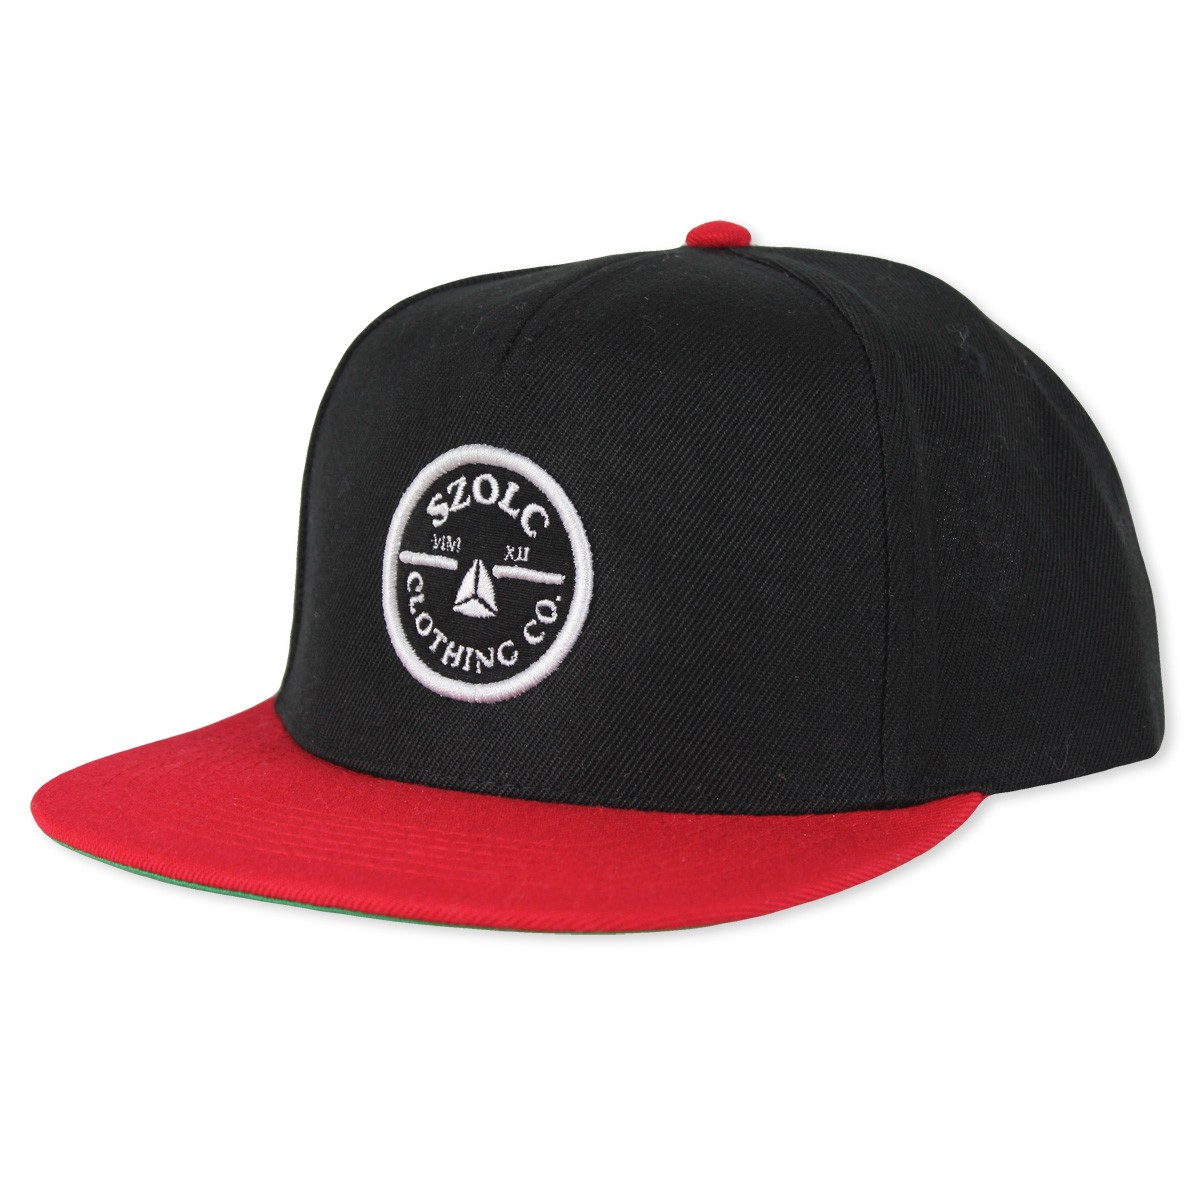 Black/Red Snapback Cap